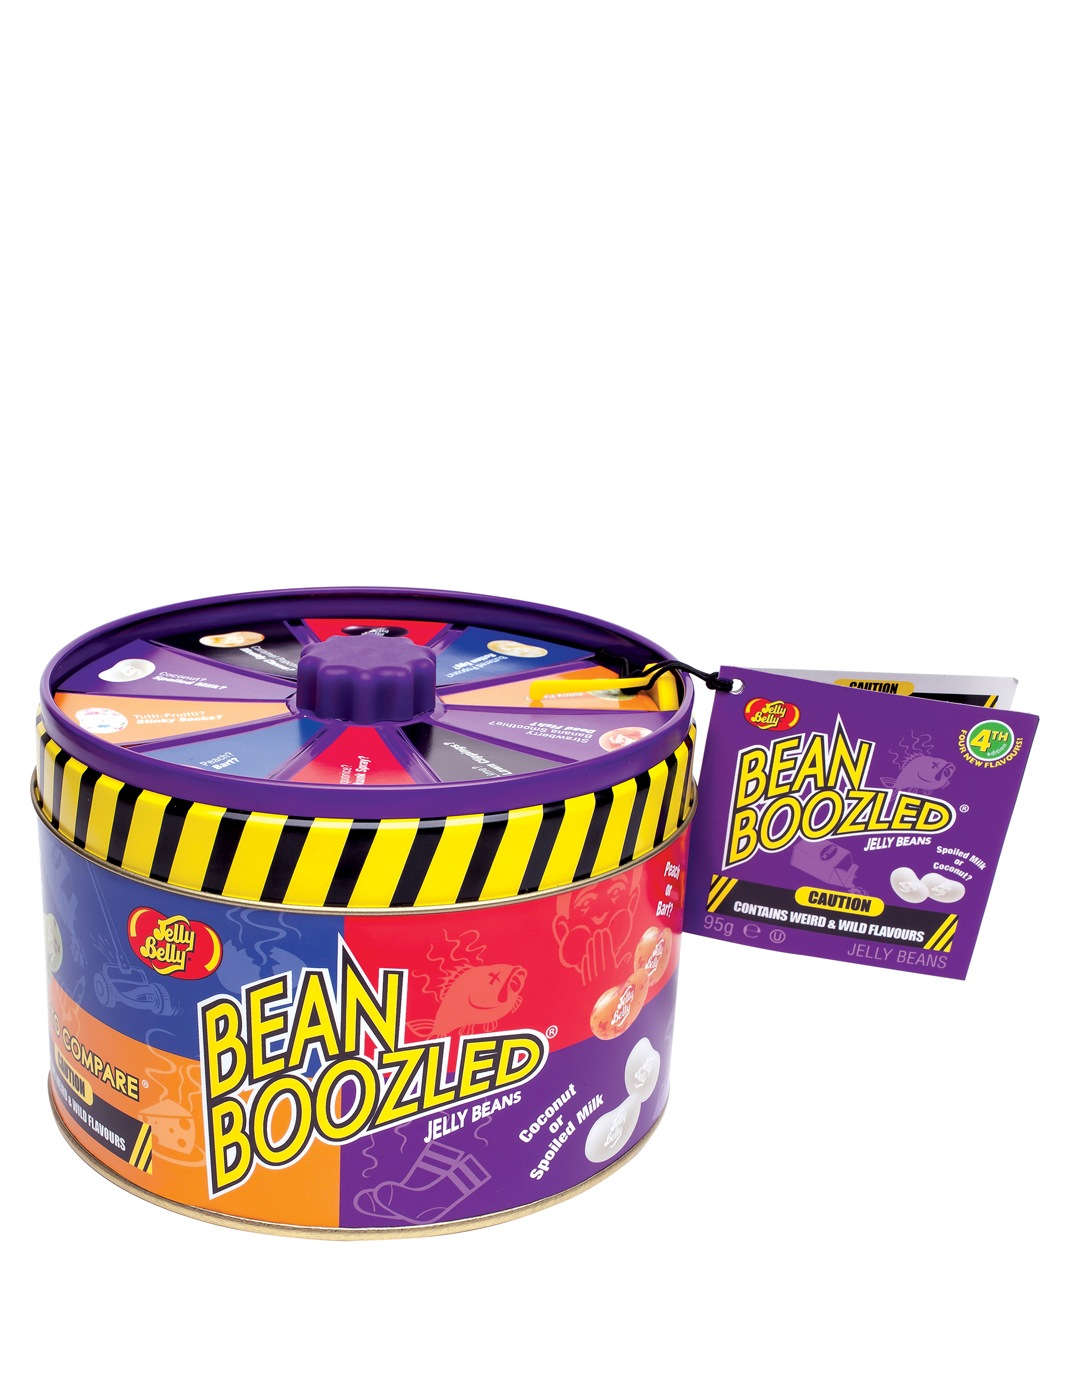 Giant Bean Boozled Complete Iphone 8 Kuxniya Refill Harry Potter Spinner Dispenser Google Search Candy